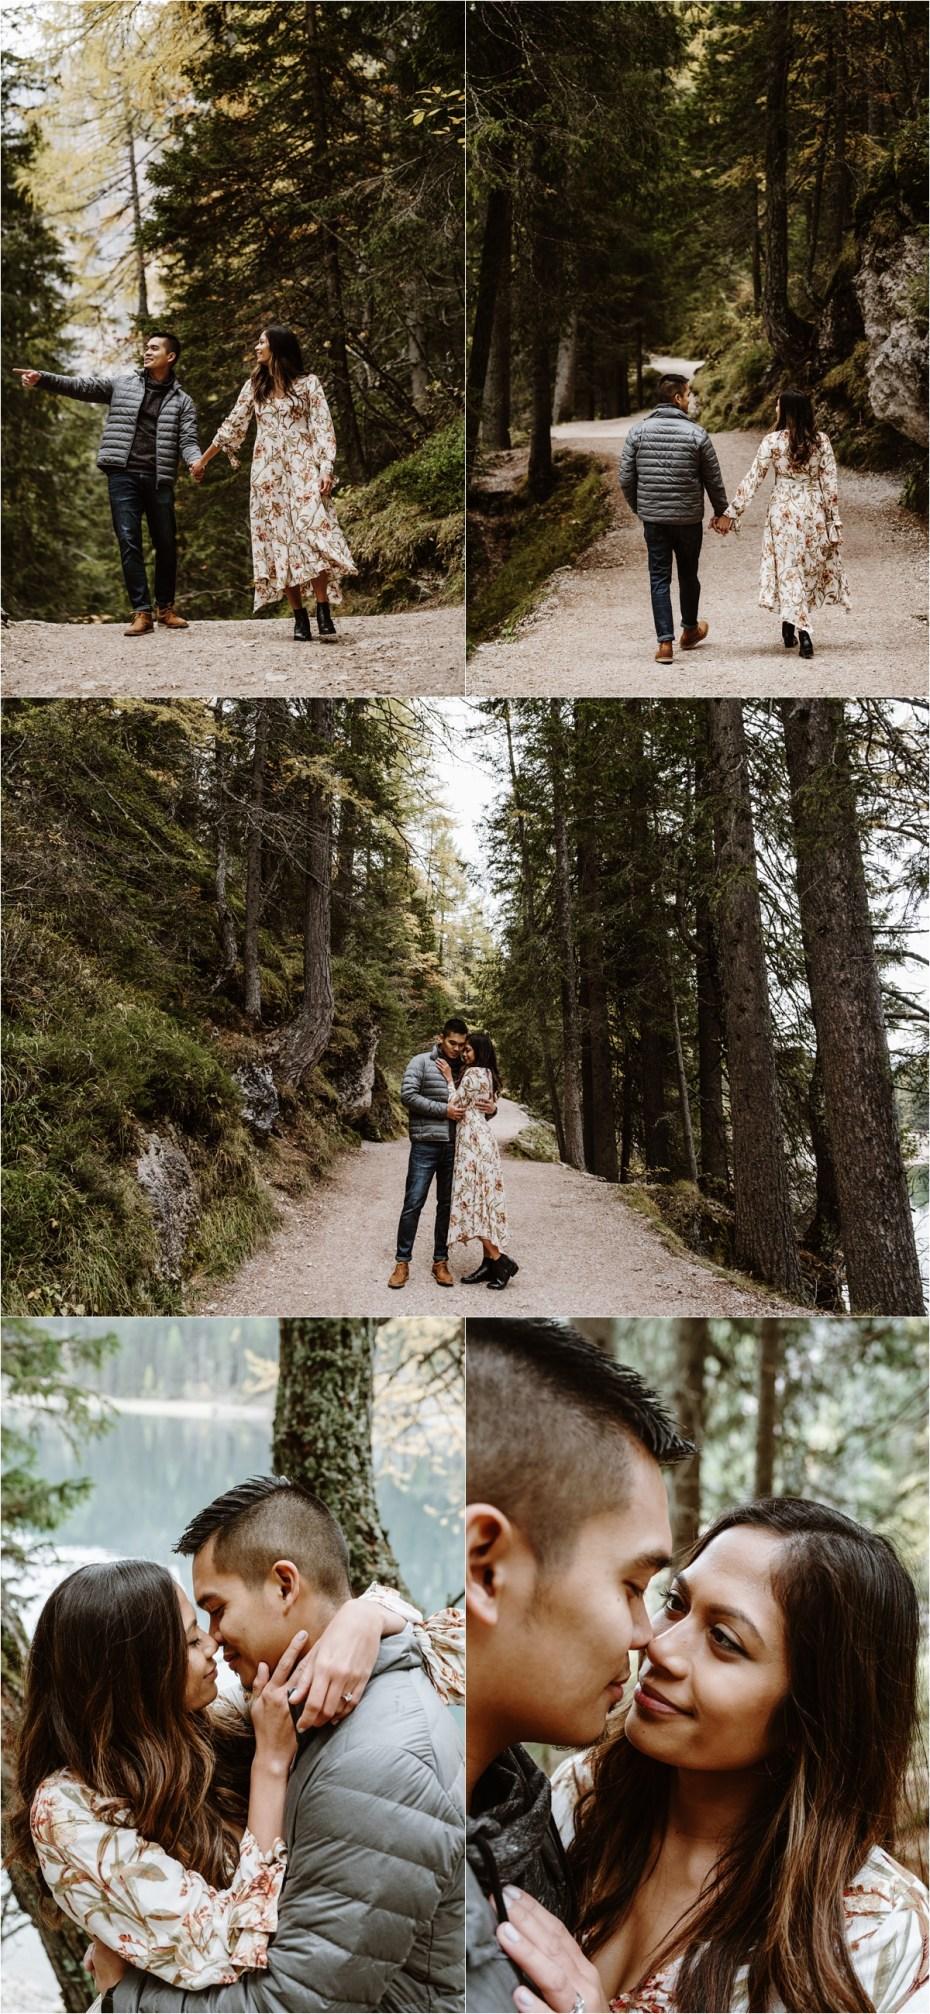 Newly engaged couple Jeremy & Katrina explore the walking trails around Lake Braies. Photos by Wild Connections Photography.